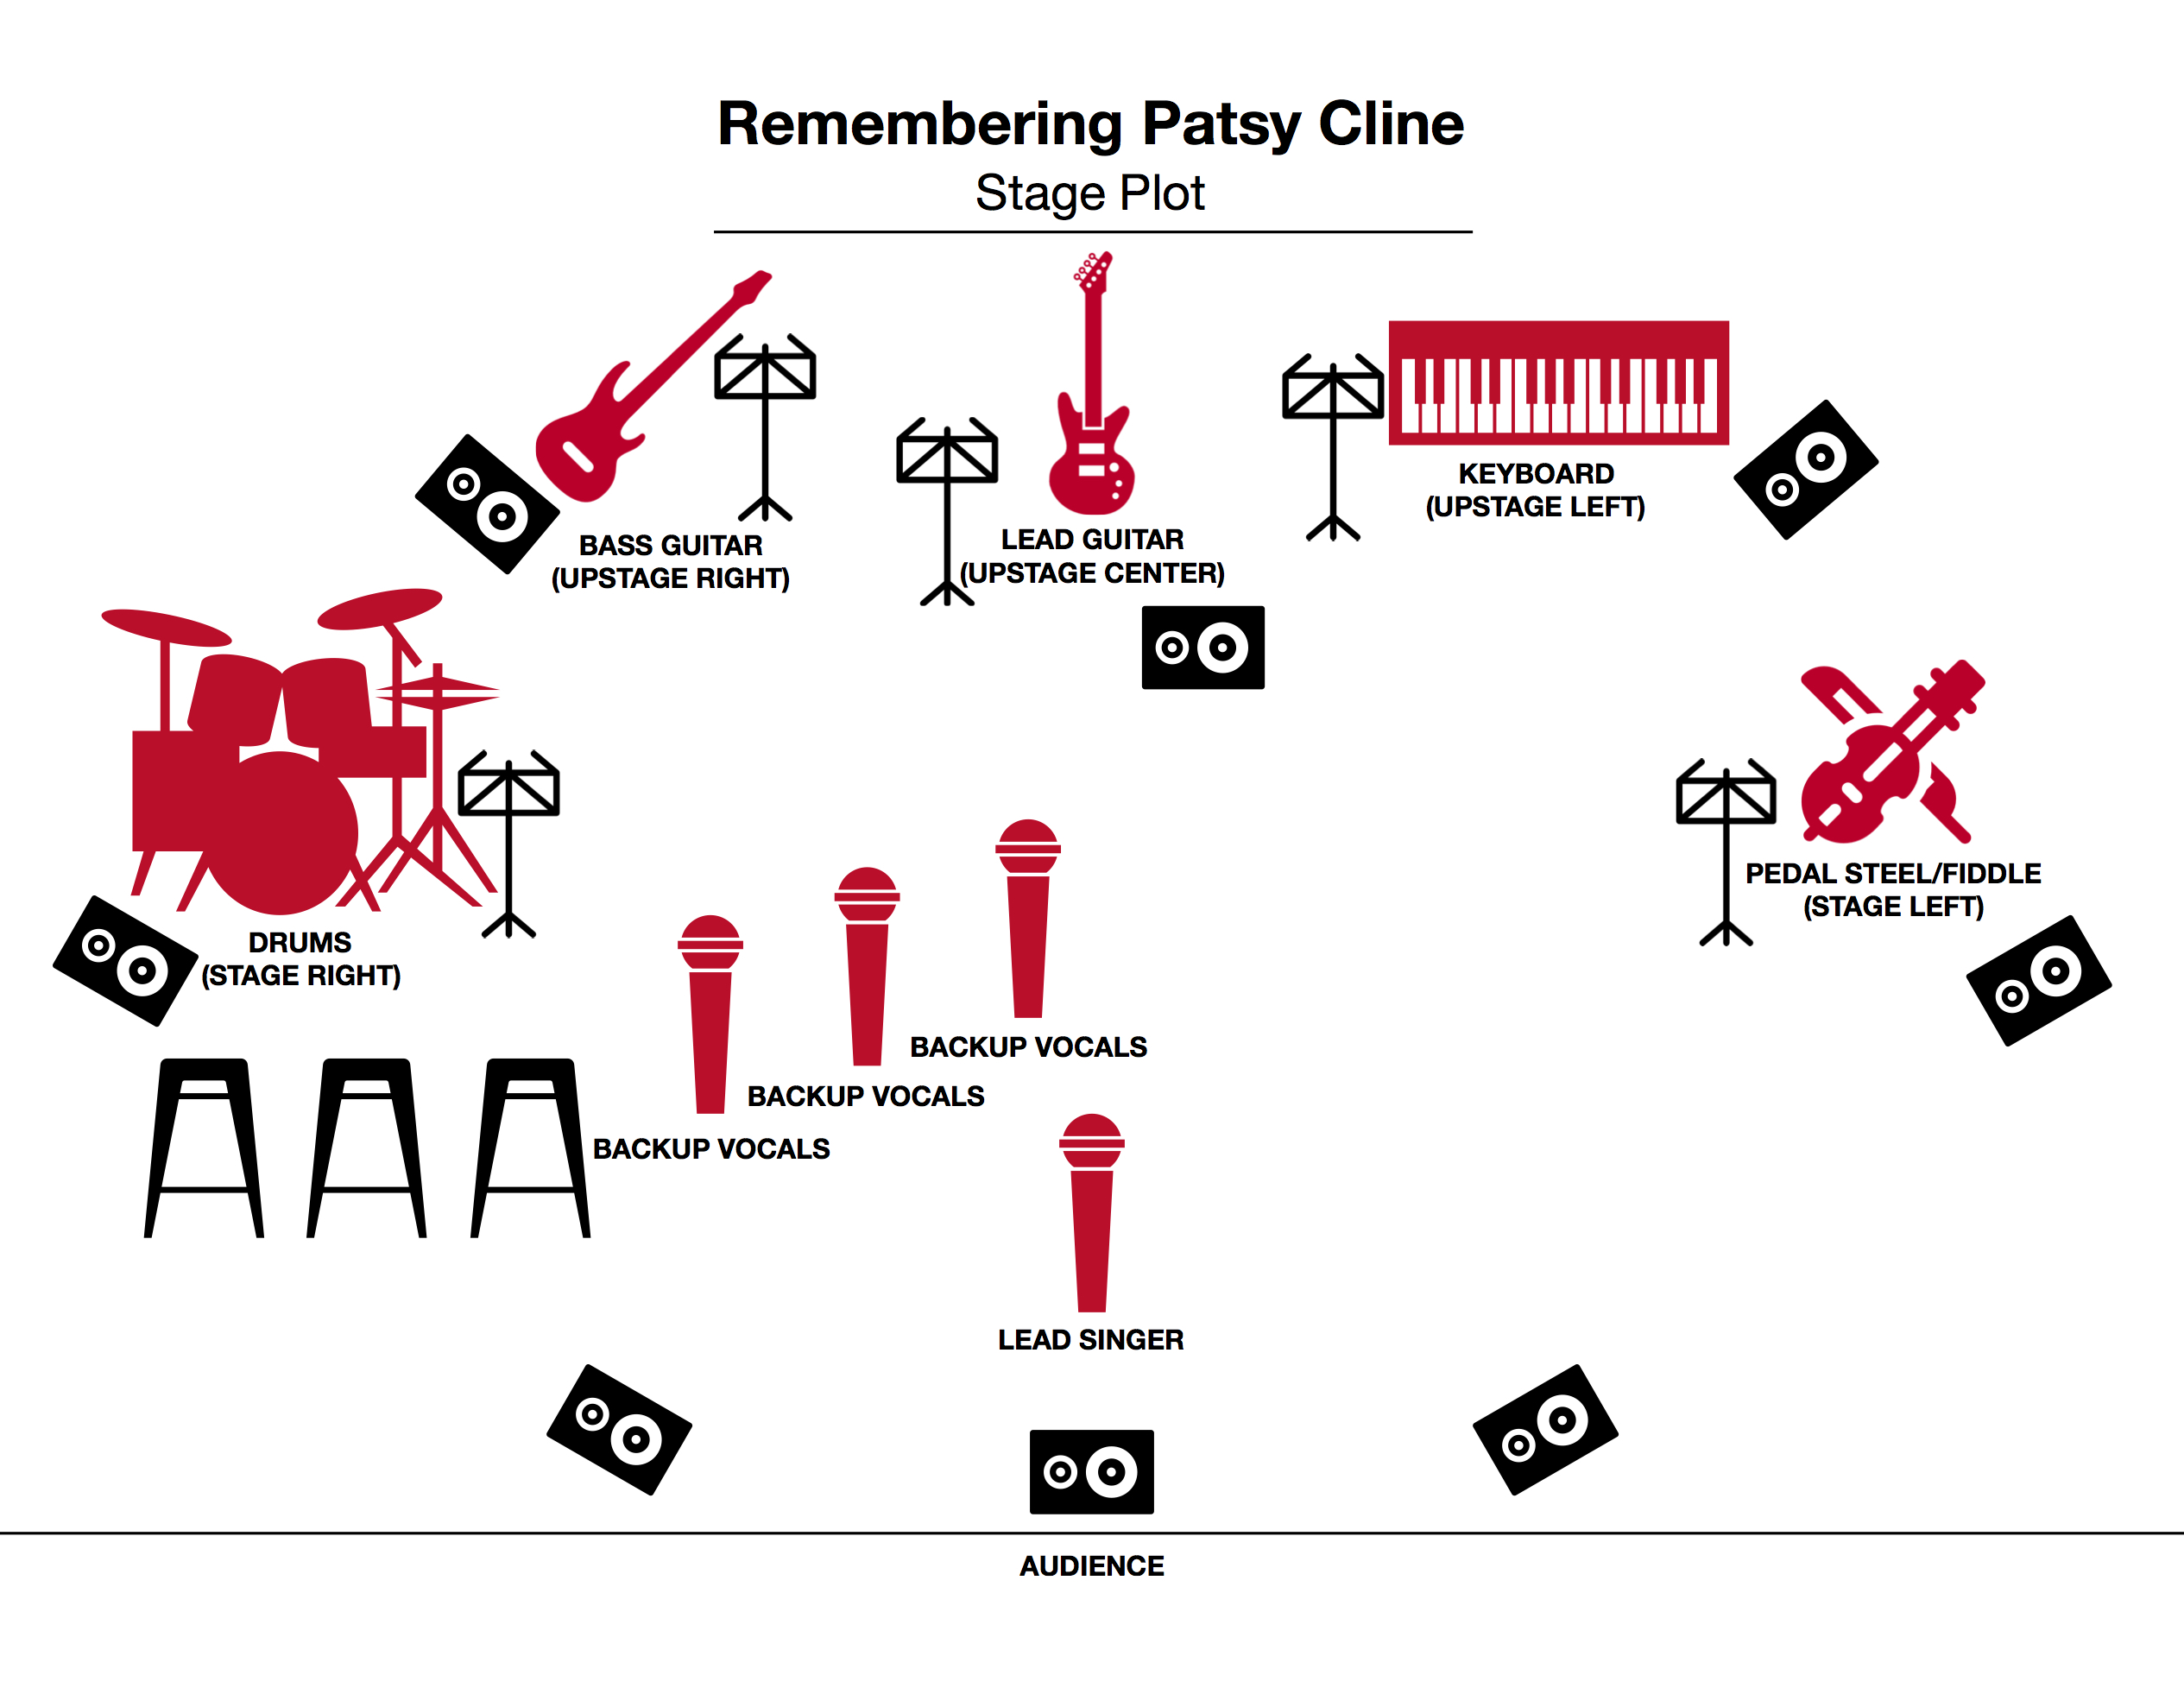 Remembering Patsy Cline Stage Plot